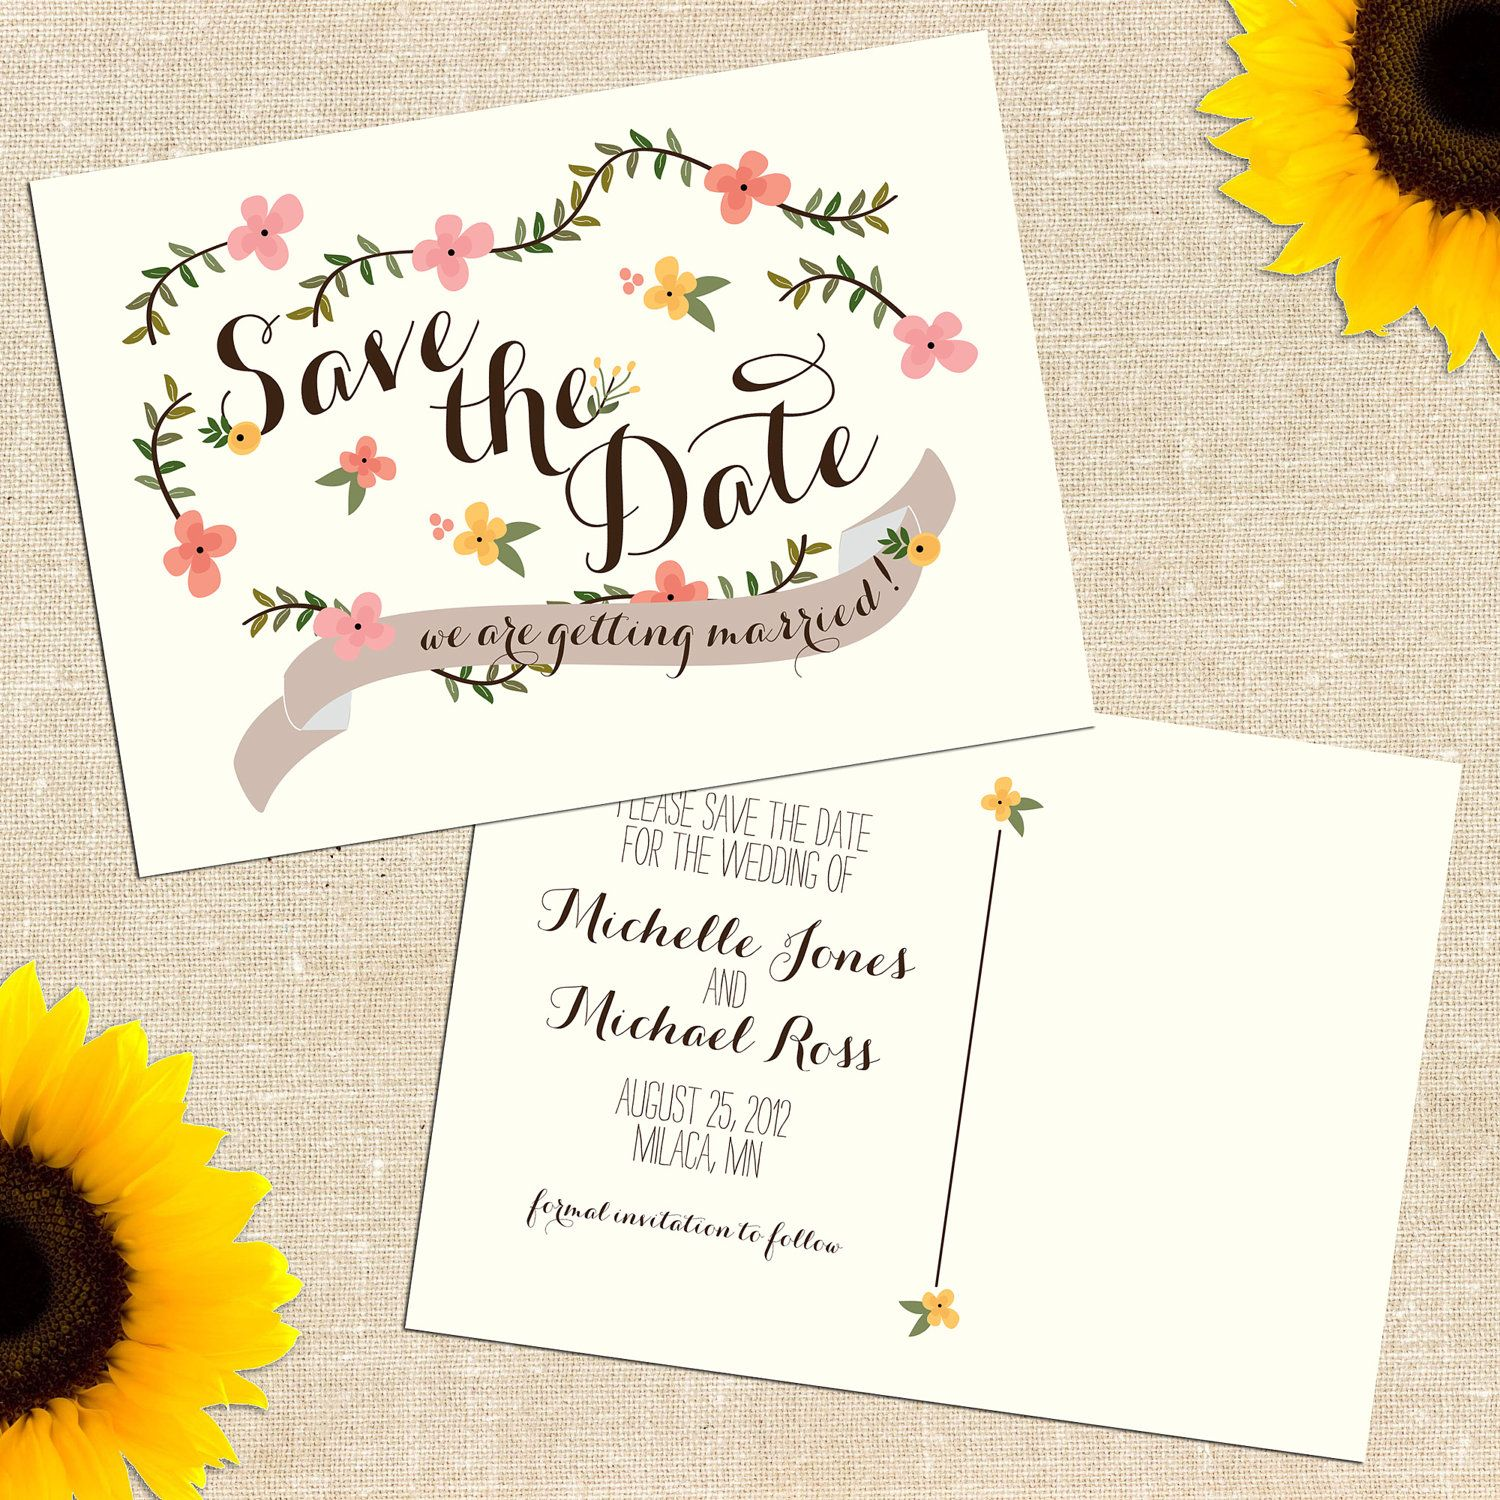 17 Best images about Save the date – Save the Date Wedding Invite